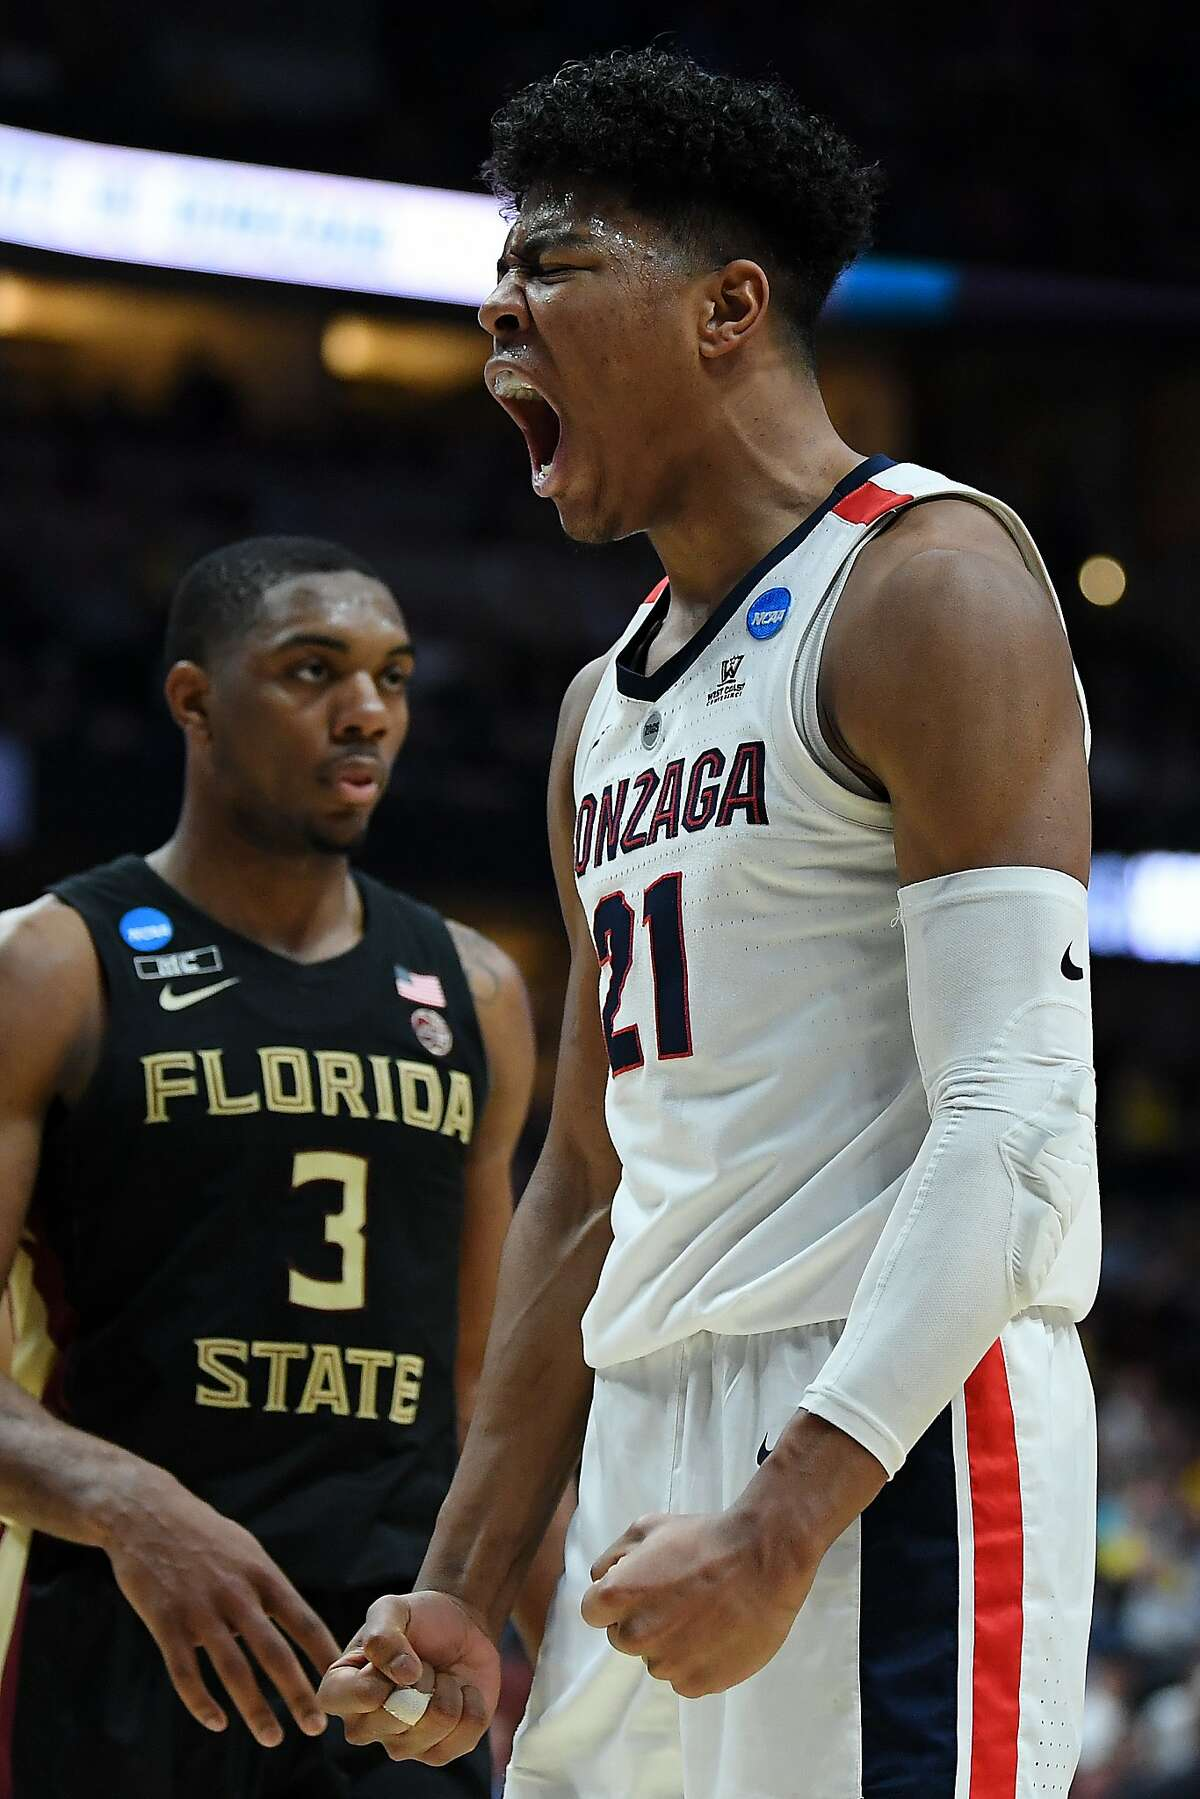 ANAHEIM, CALIFORNIA - MARCH 28: Rui Hachimura #21 of the Gonzaga Bulldogs celebrates after a dunk against Mfiondu Kabengele #25 of the Florida State Seminoles during the 2019 NCAA Men's Basketball Tournament West Regional at Honda Center on March 28, 2019 in Anaheim, California. (Photo by Harry How/Getty Images)